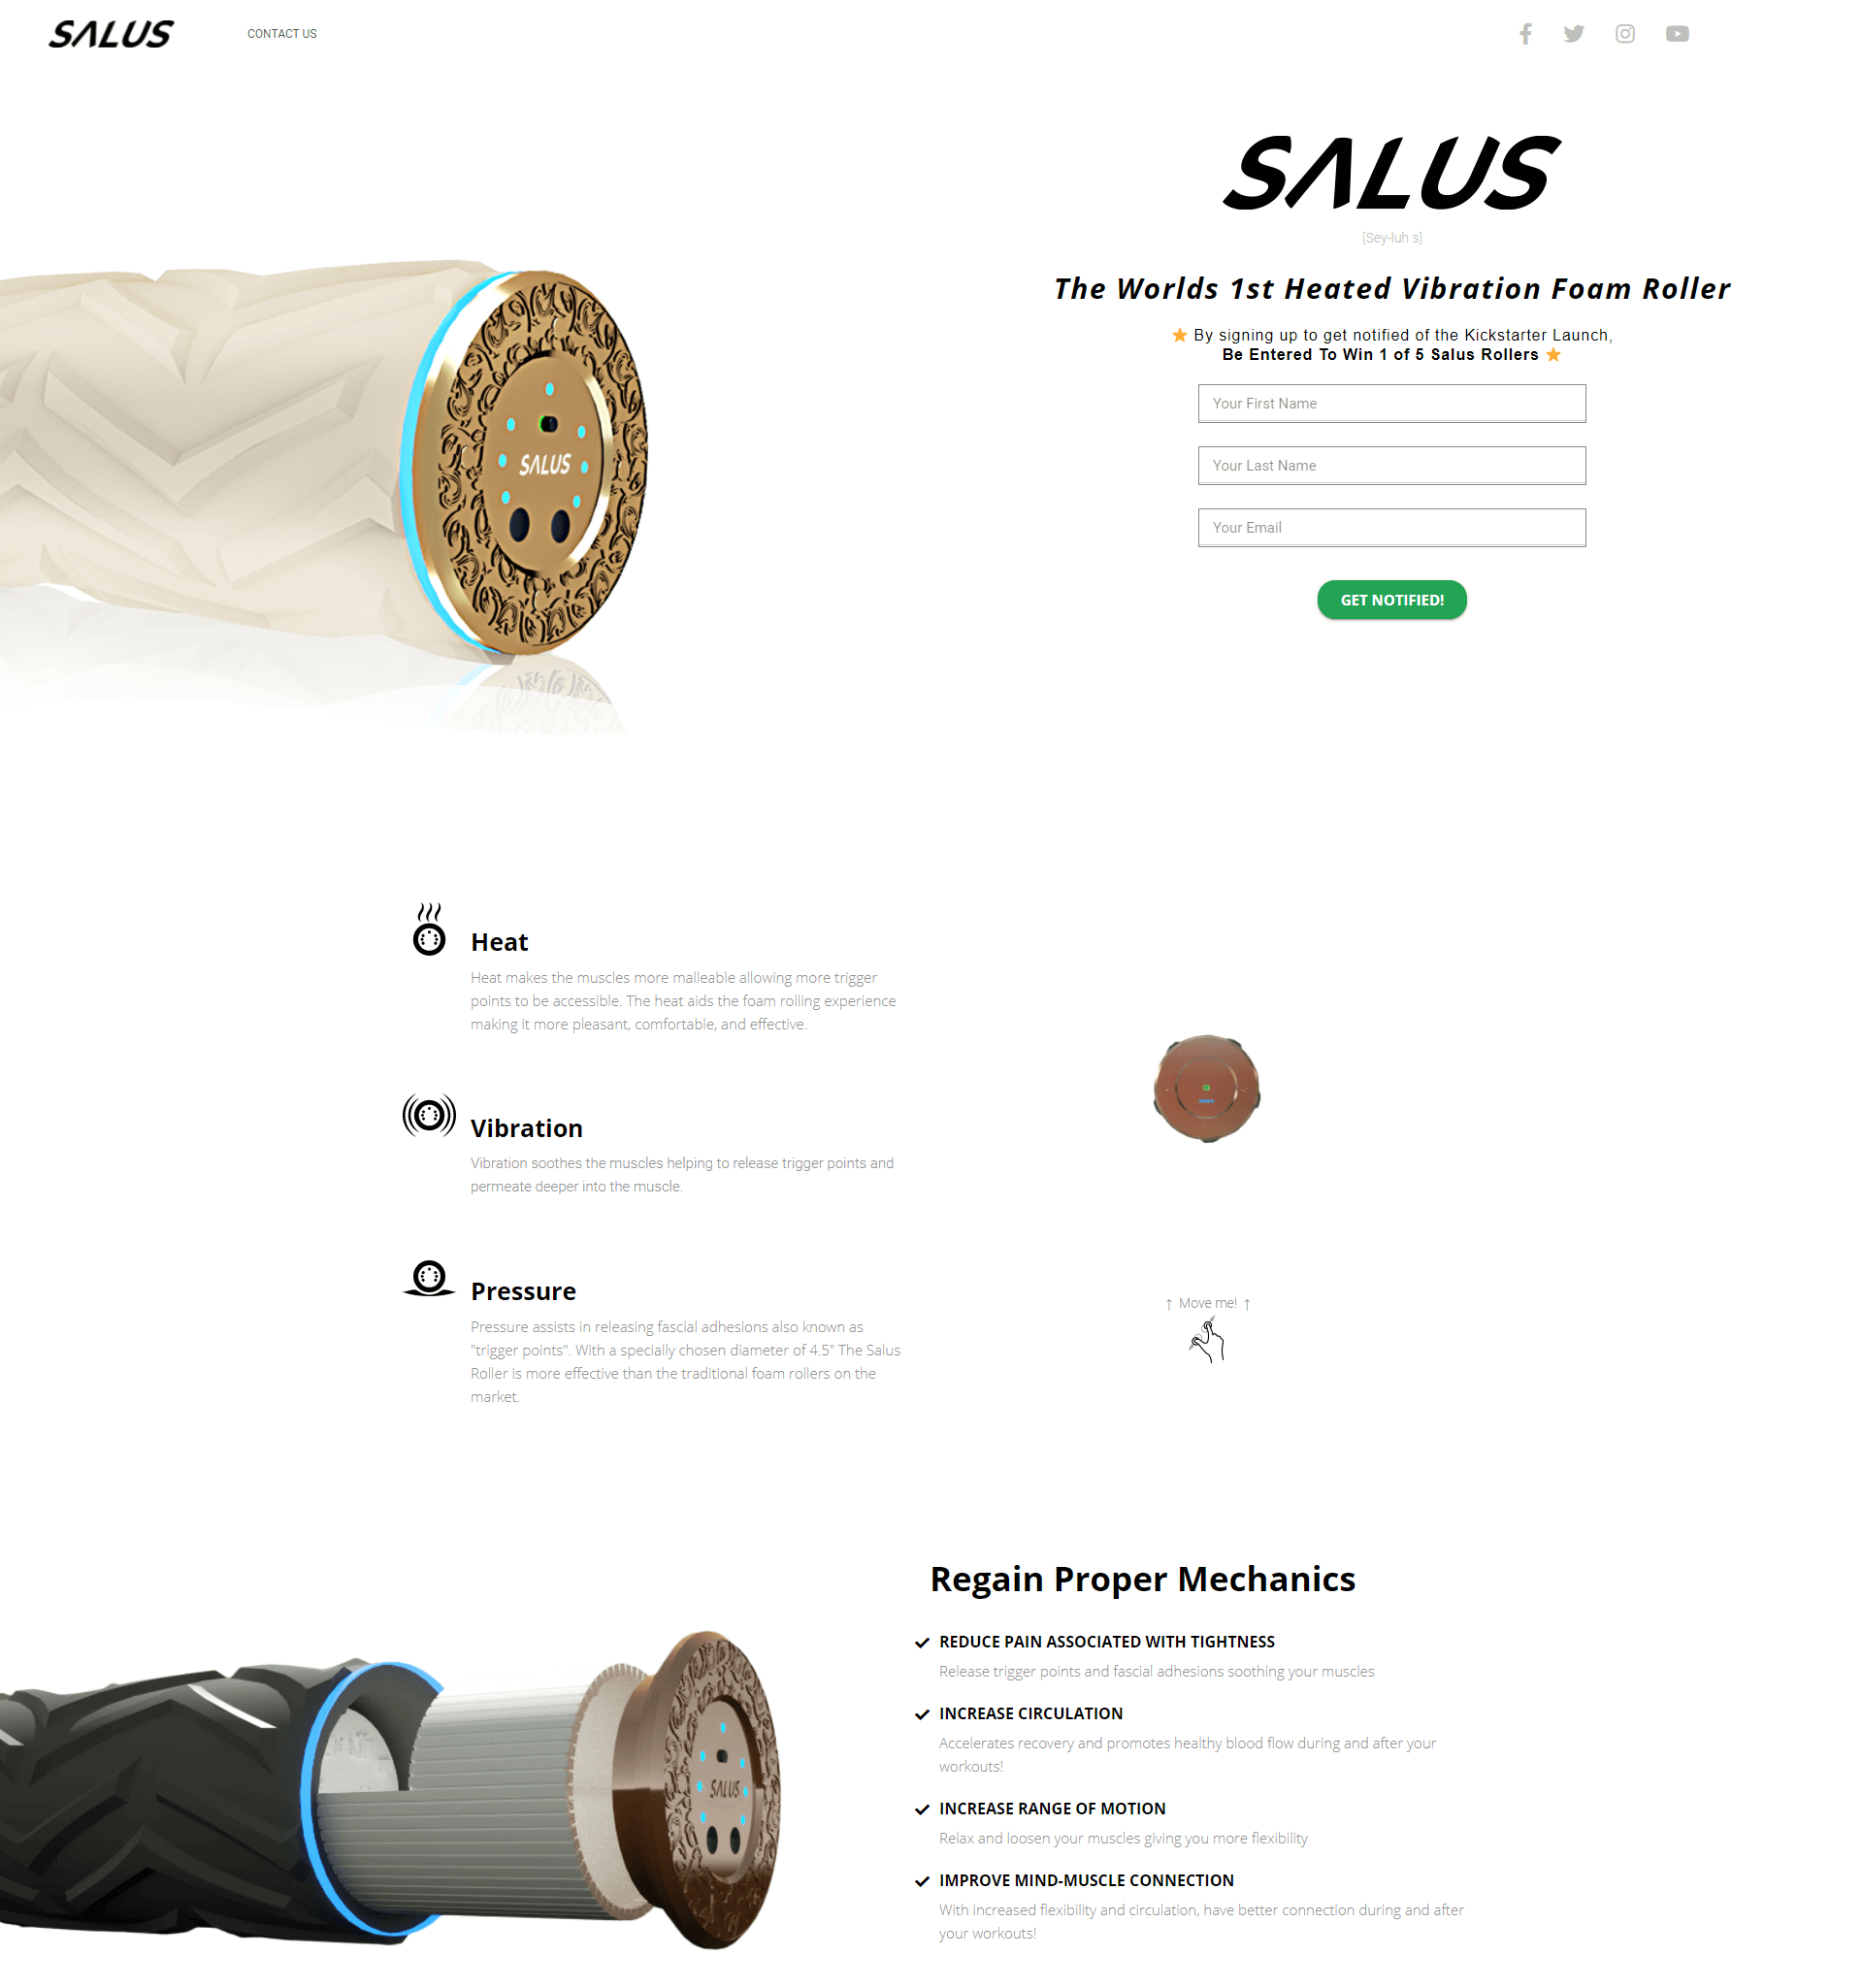 salus official landing page